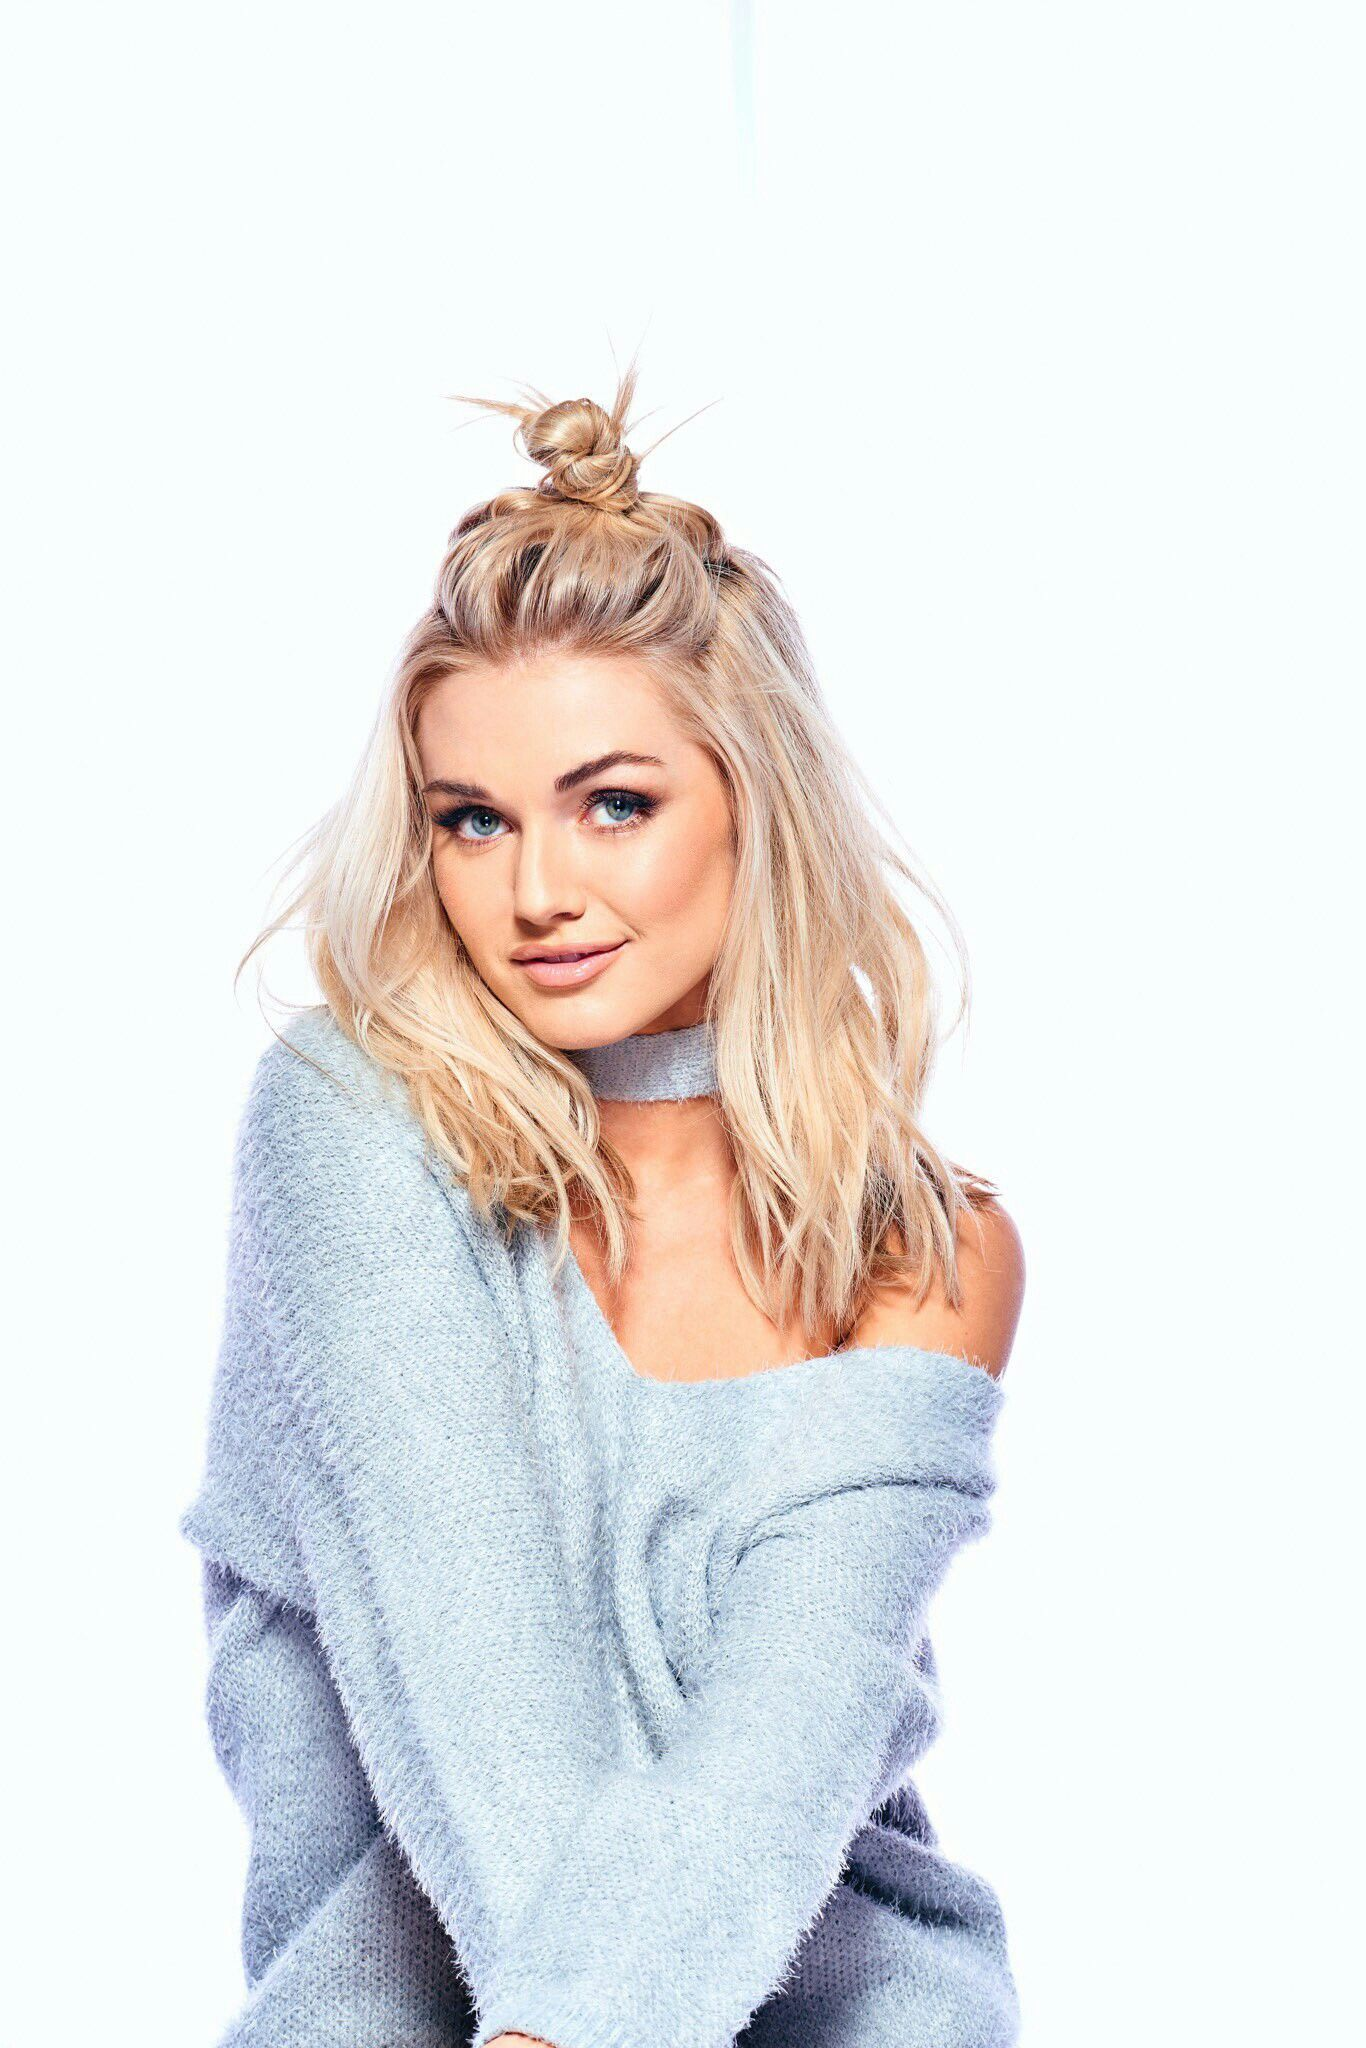 Celebrity Lindsay Arnold nudes (21 photos), Tits, Is a cute, Twitter, braless 2015